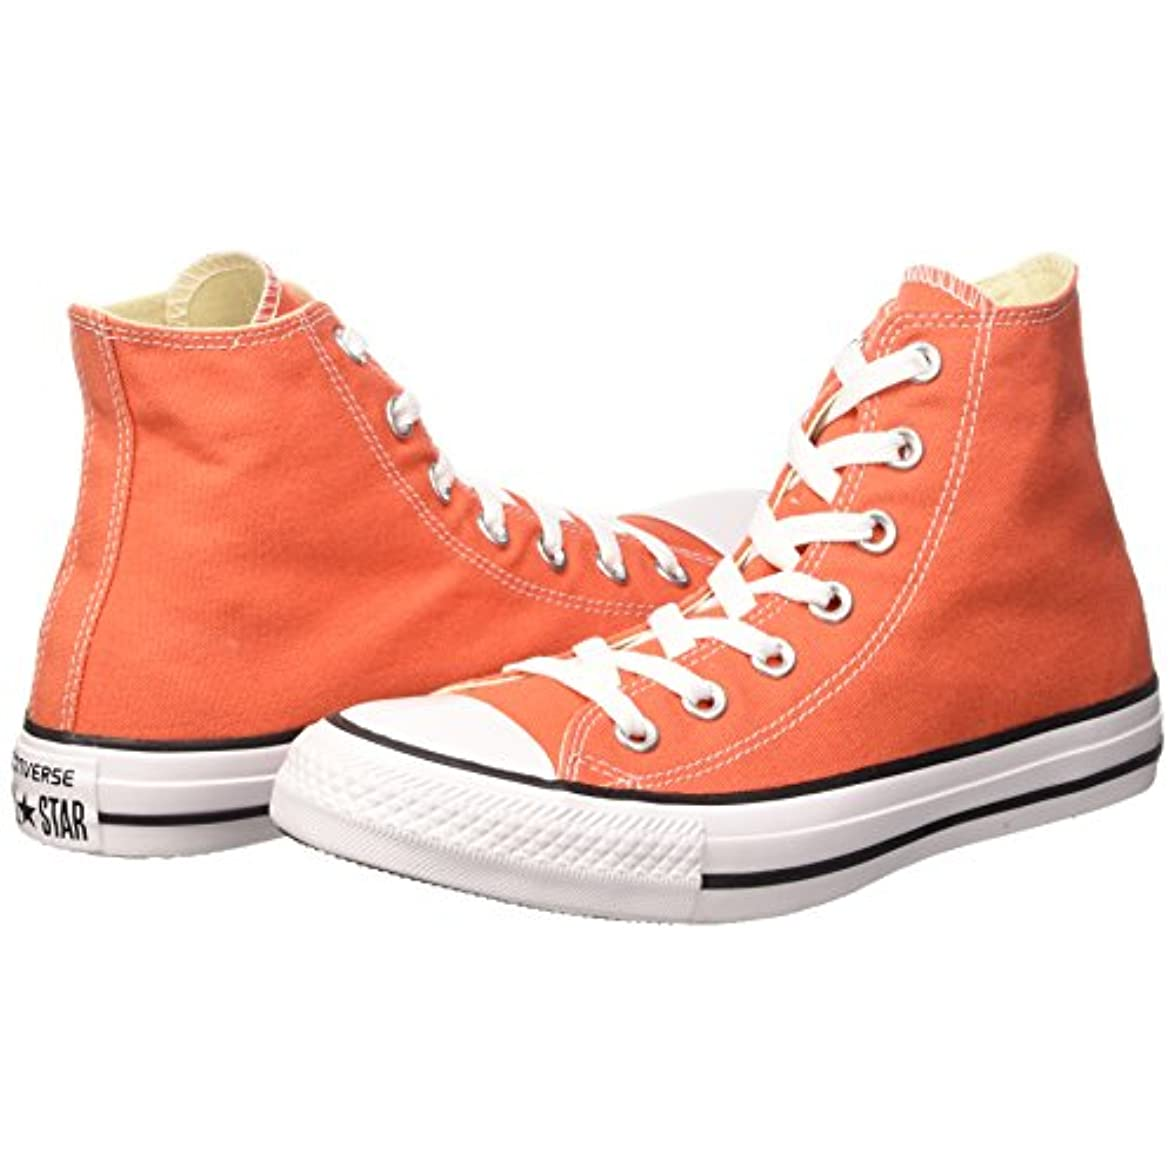 Converse Unisex Chuck Taylor All Star Hi-top Trainers